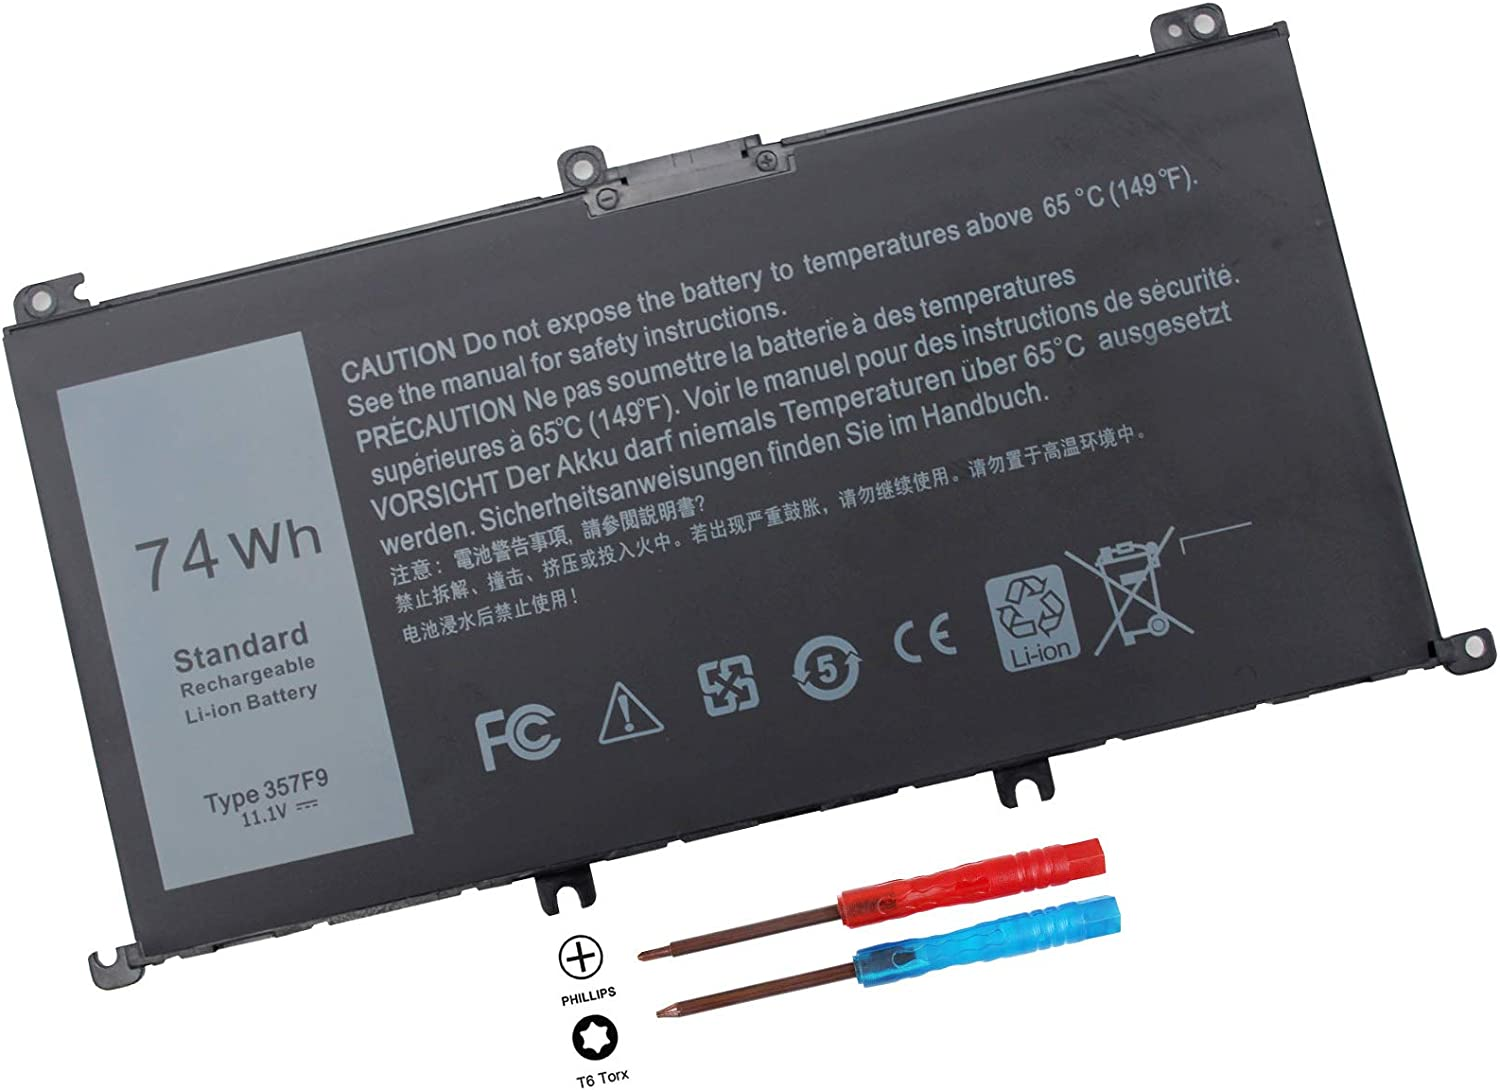 74WH 357F9 71jf4 Battery for Dell Inspiron 15 7000 Gaming 15 7557 i7557 7559 i7559 5576 7566 5577 7567 i7559-5012GRY i5577-7342blk-pus INS15PD Series 071jf4 0GFJ6 0357F9 P65F P65F001 P57F P57F003